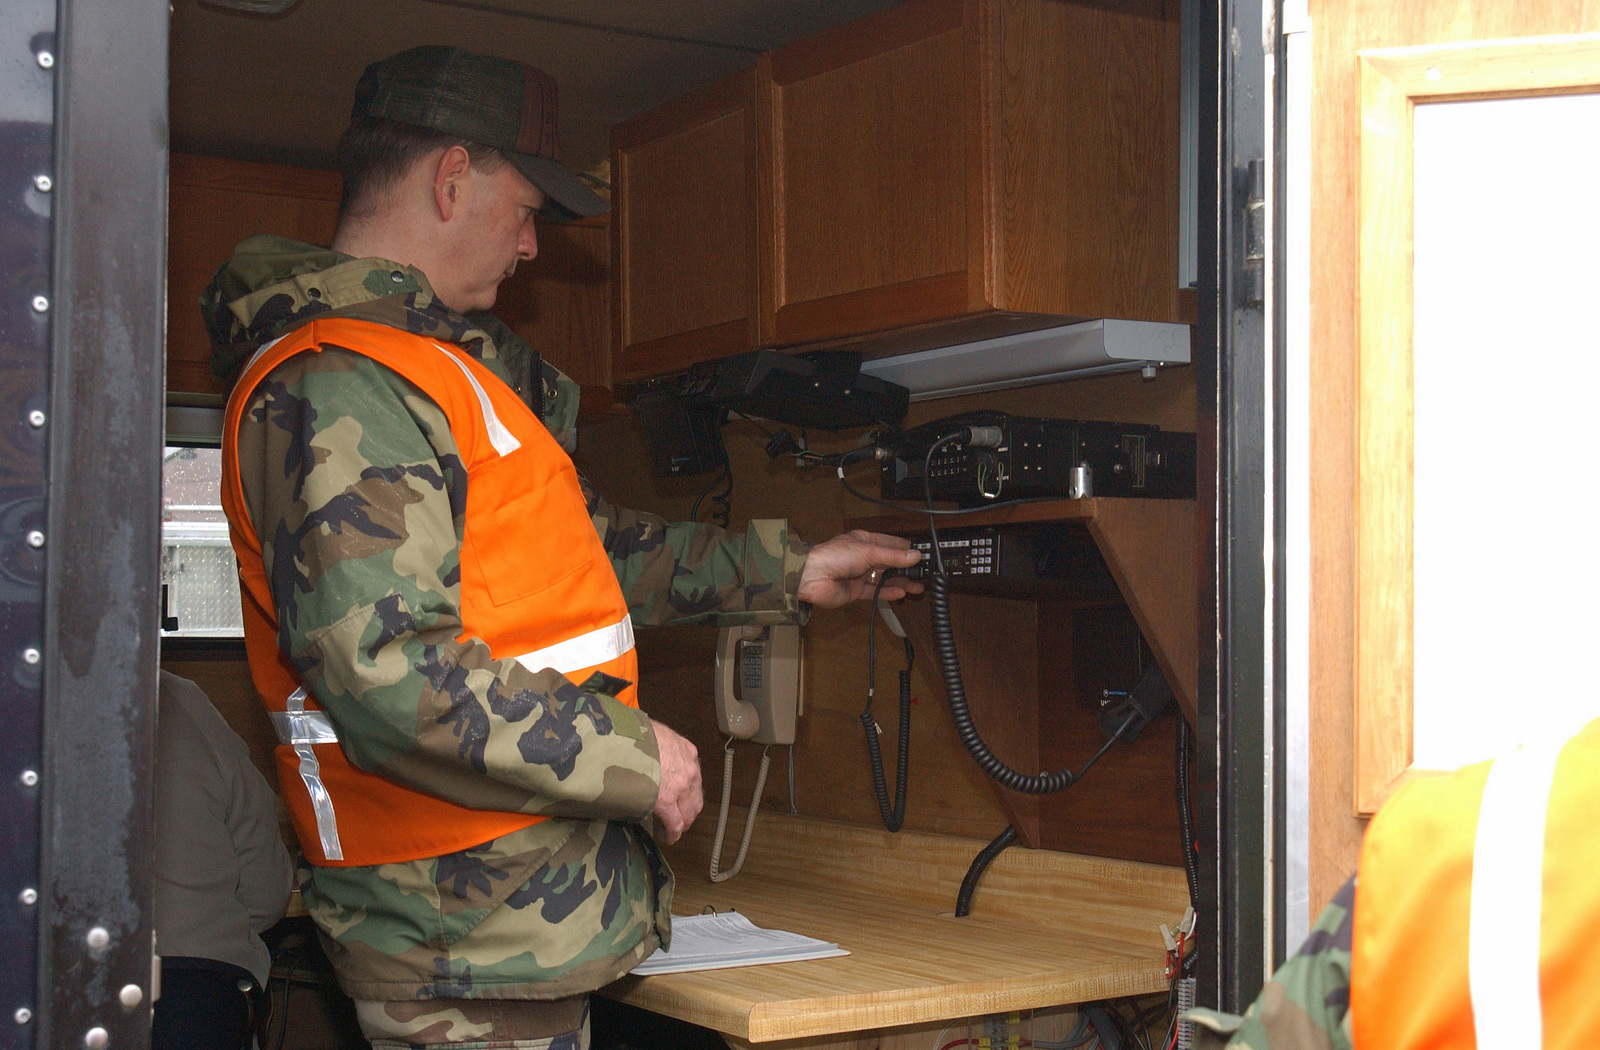 US Air Force (USAF) CHIEF MASTER Sergeant (CMSGT) Al Finkbiner, assigned to the 127th Wing, Michigan (MI) Air National Guard (ANG), adjusts the controls of the radio for the mobile command post during set up for a Military Accident Response Exercise at Selfridge, Air National Guard Base (ANGB), Michigan (MI)